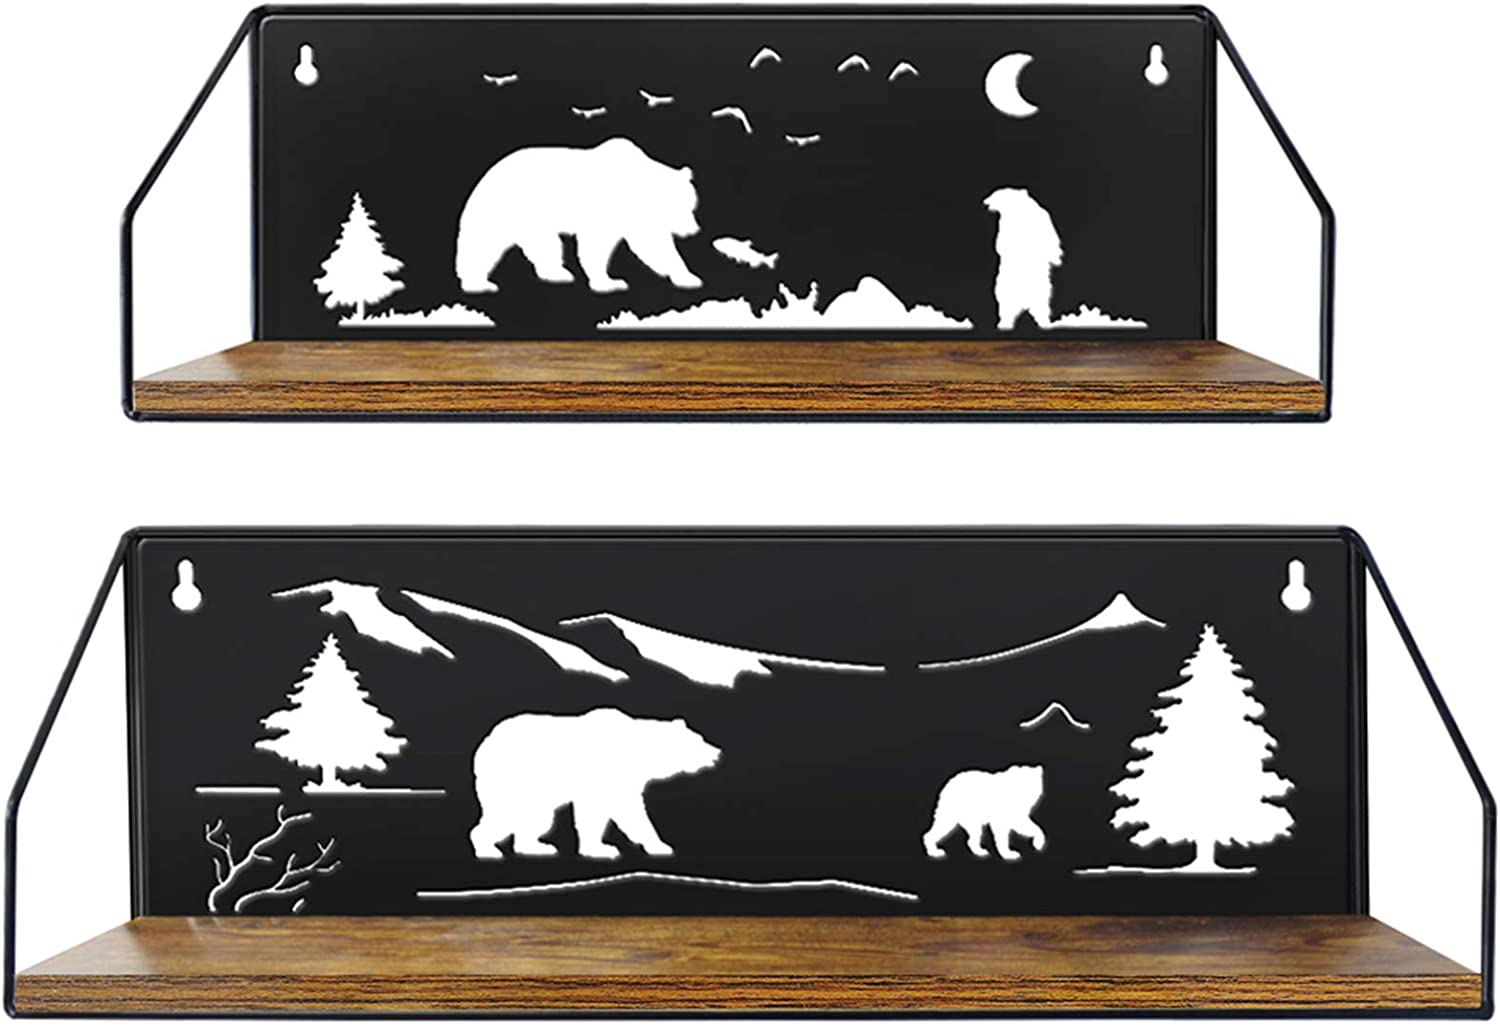 Giftgarden Floating Shelves Special price Excellent for Wall with Bears Unique Adorable